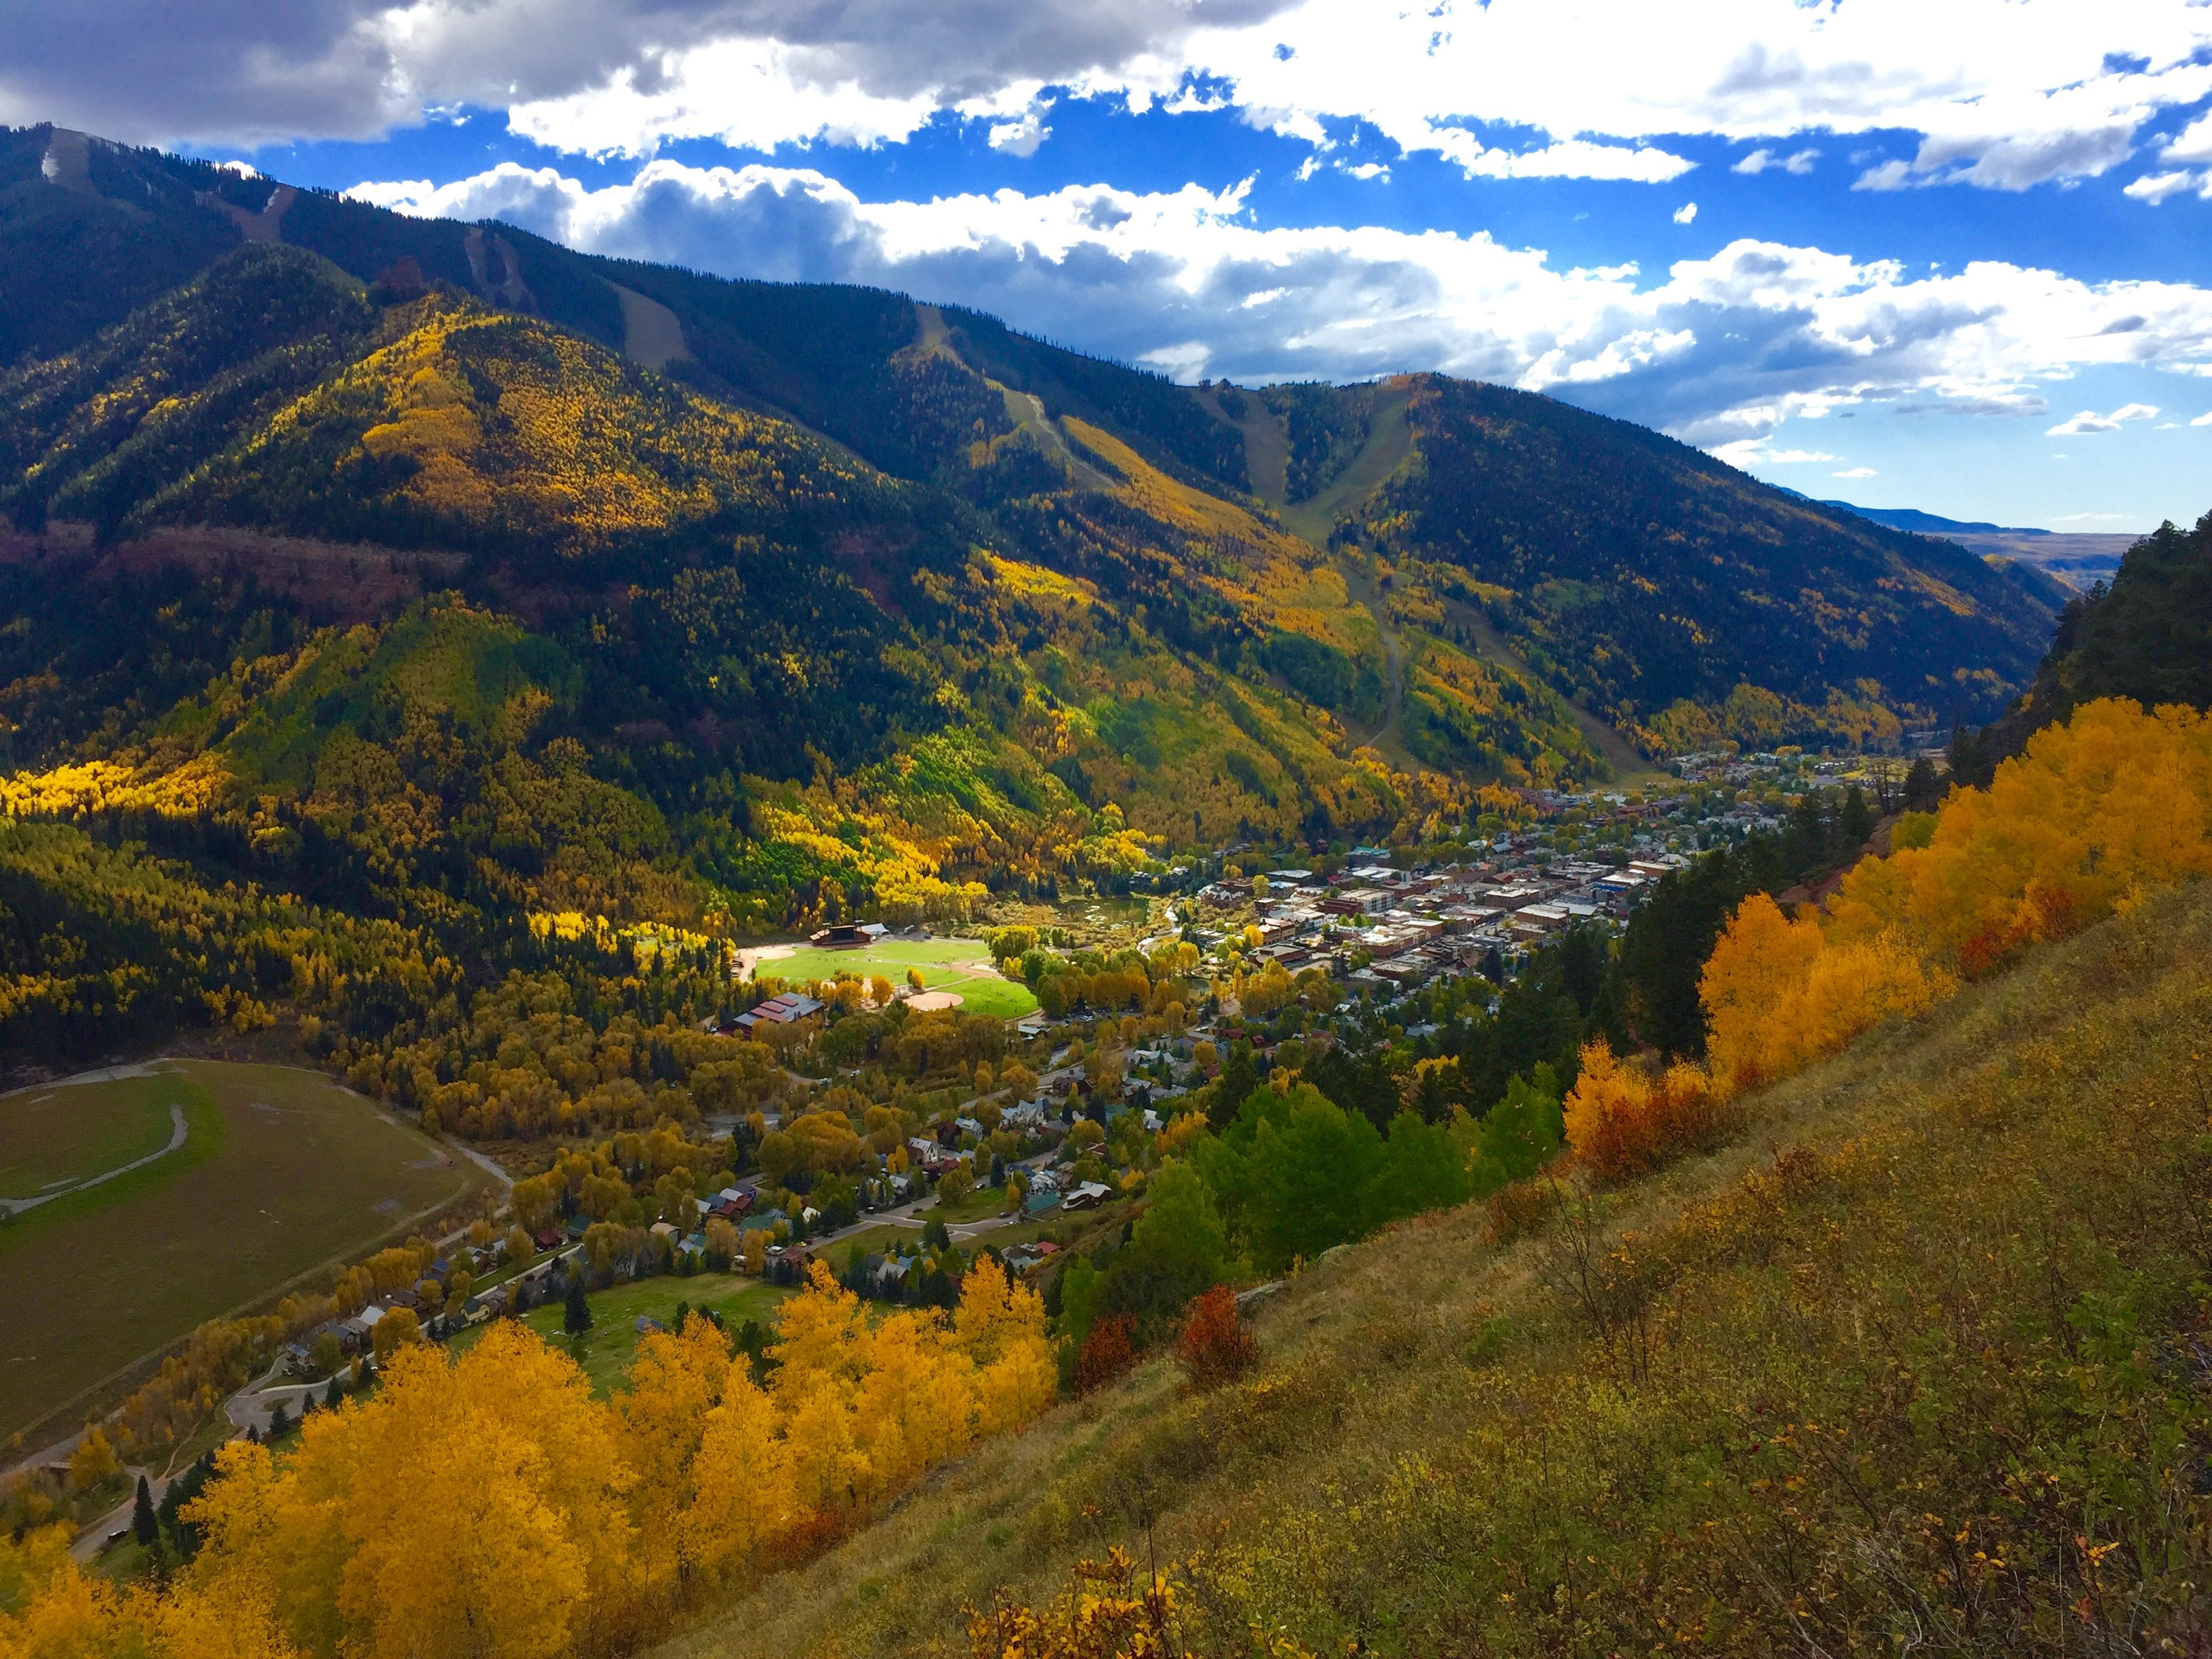 Looking down on the town of Telluride from Tomboy Road this past week.